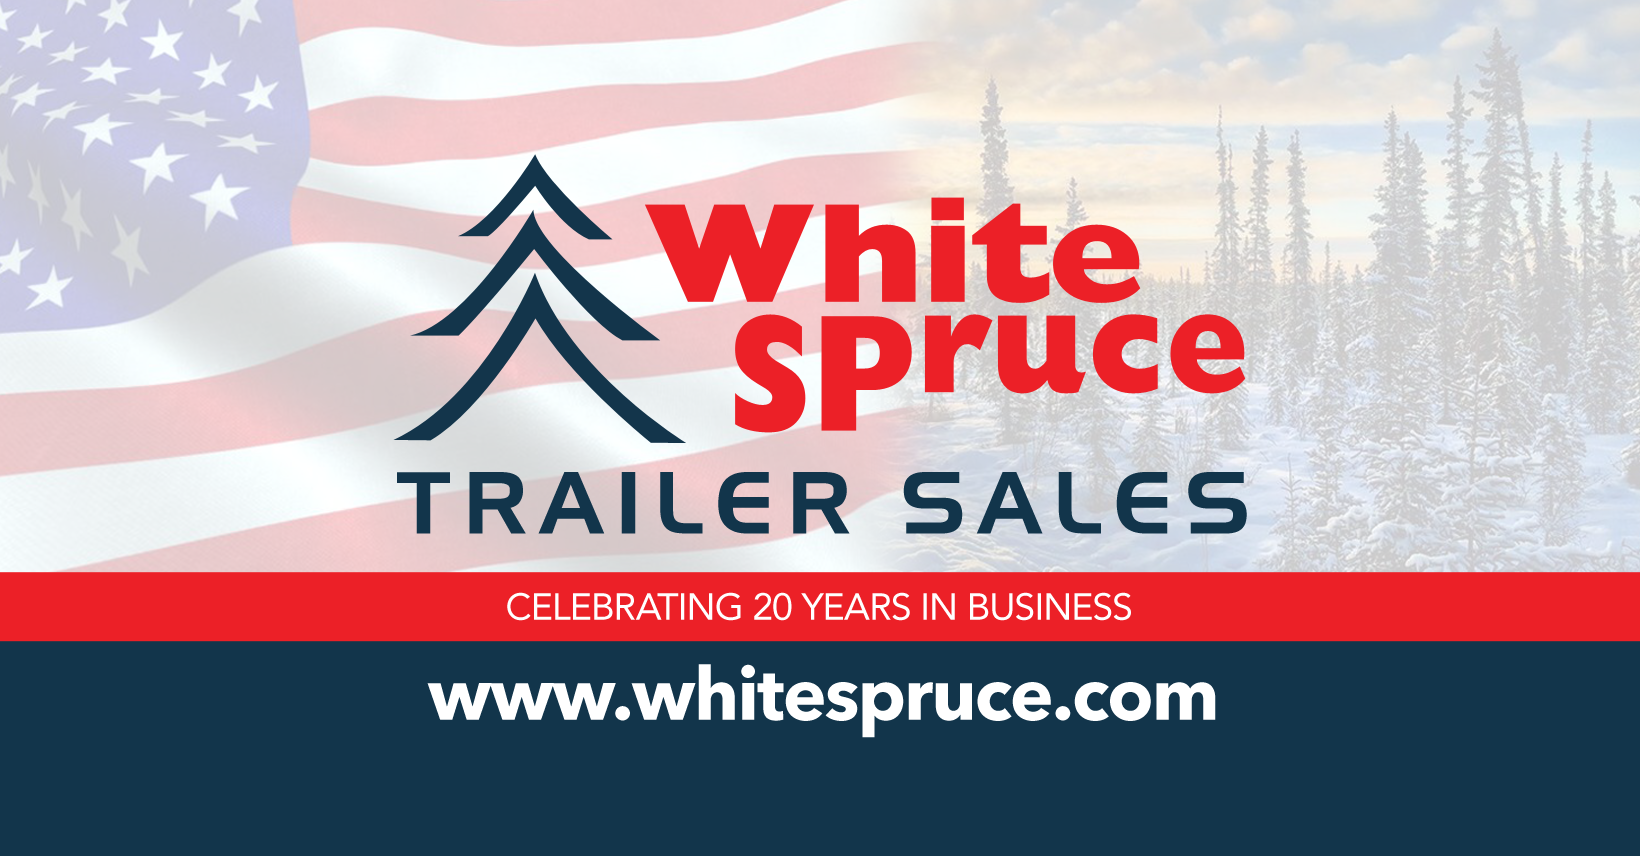 White Spruce Trailer Sales-Anchorage reviews | Trailer Dealers at 1580 East 72nd Ave - Anchorage AK